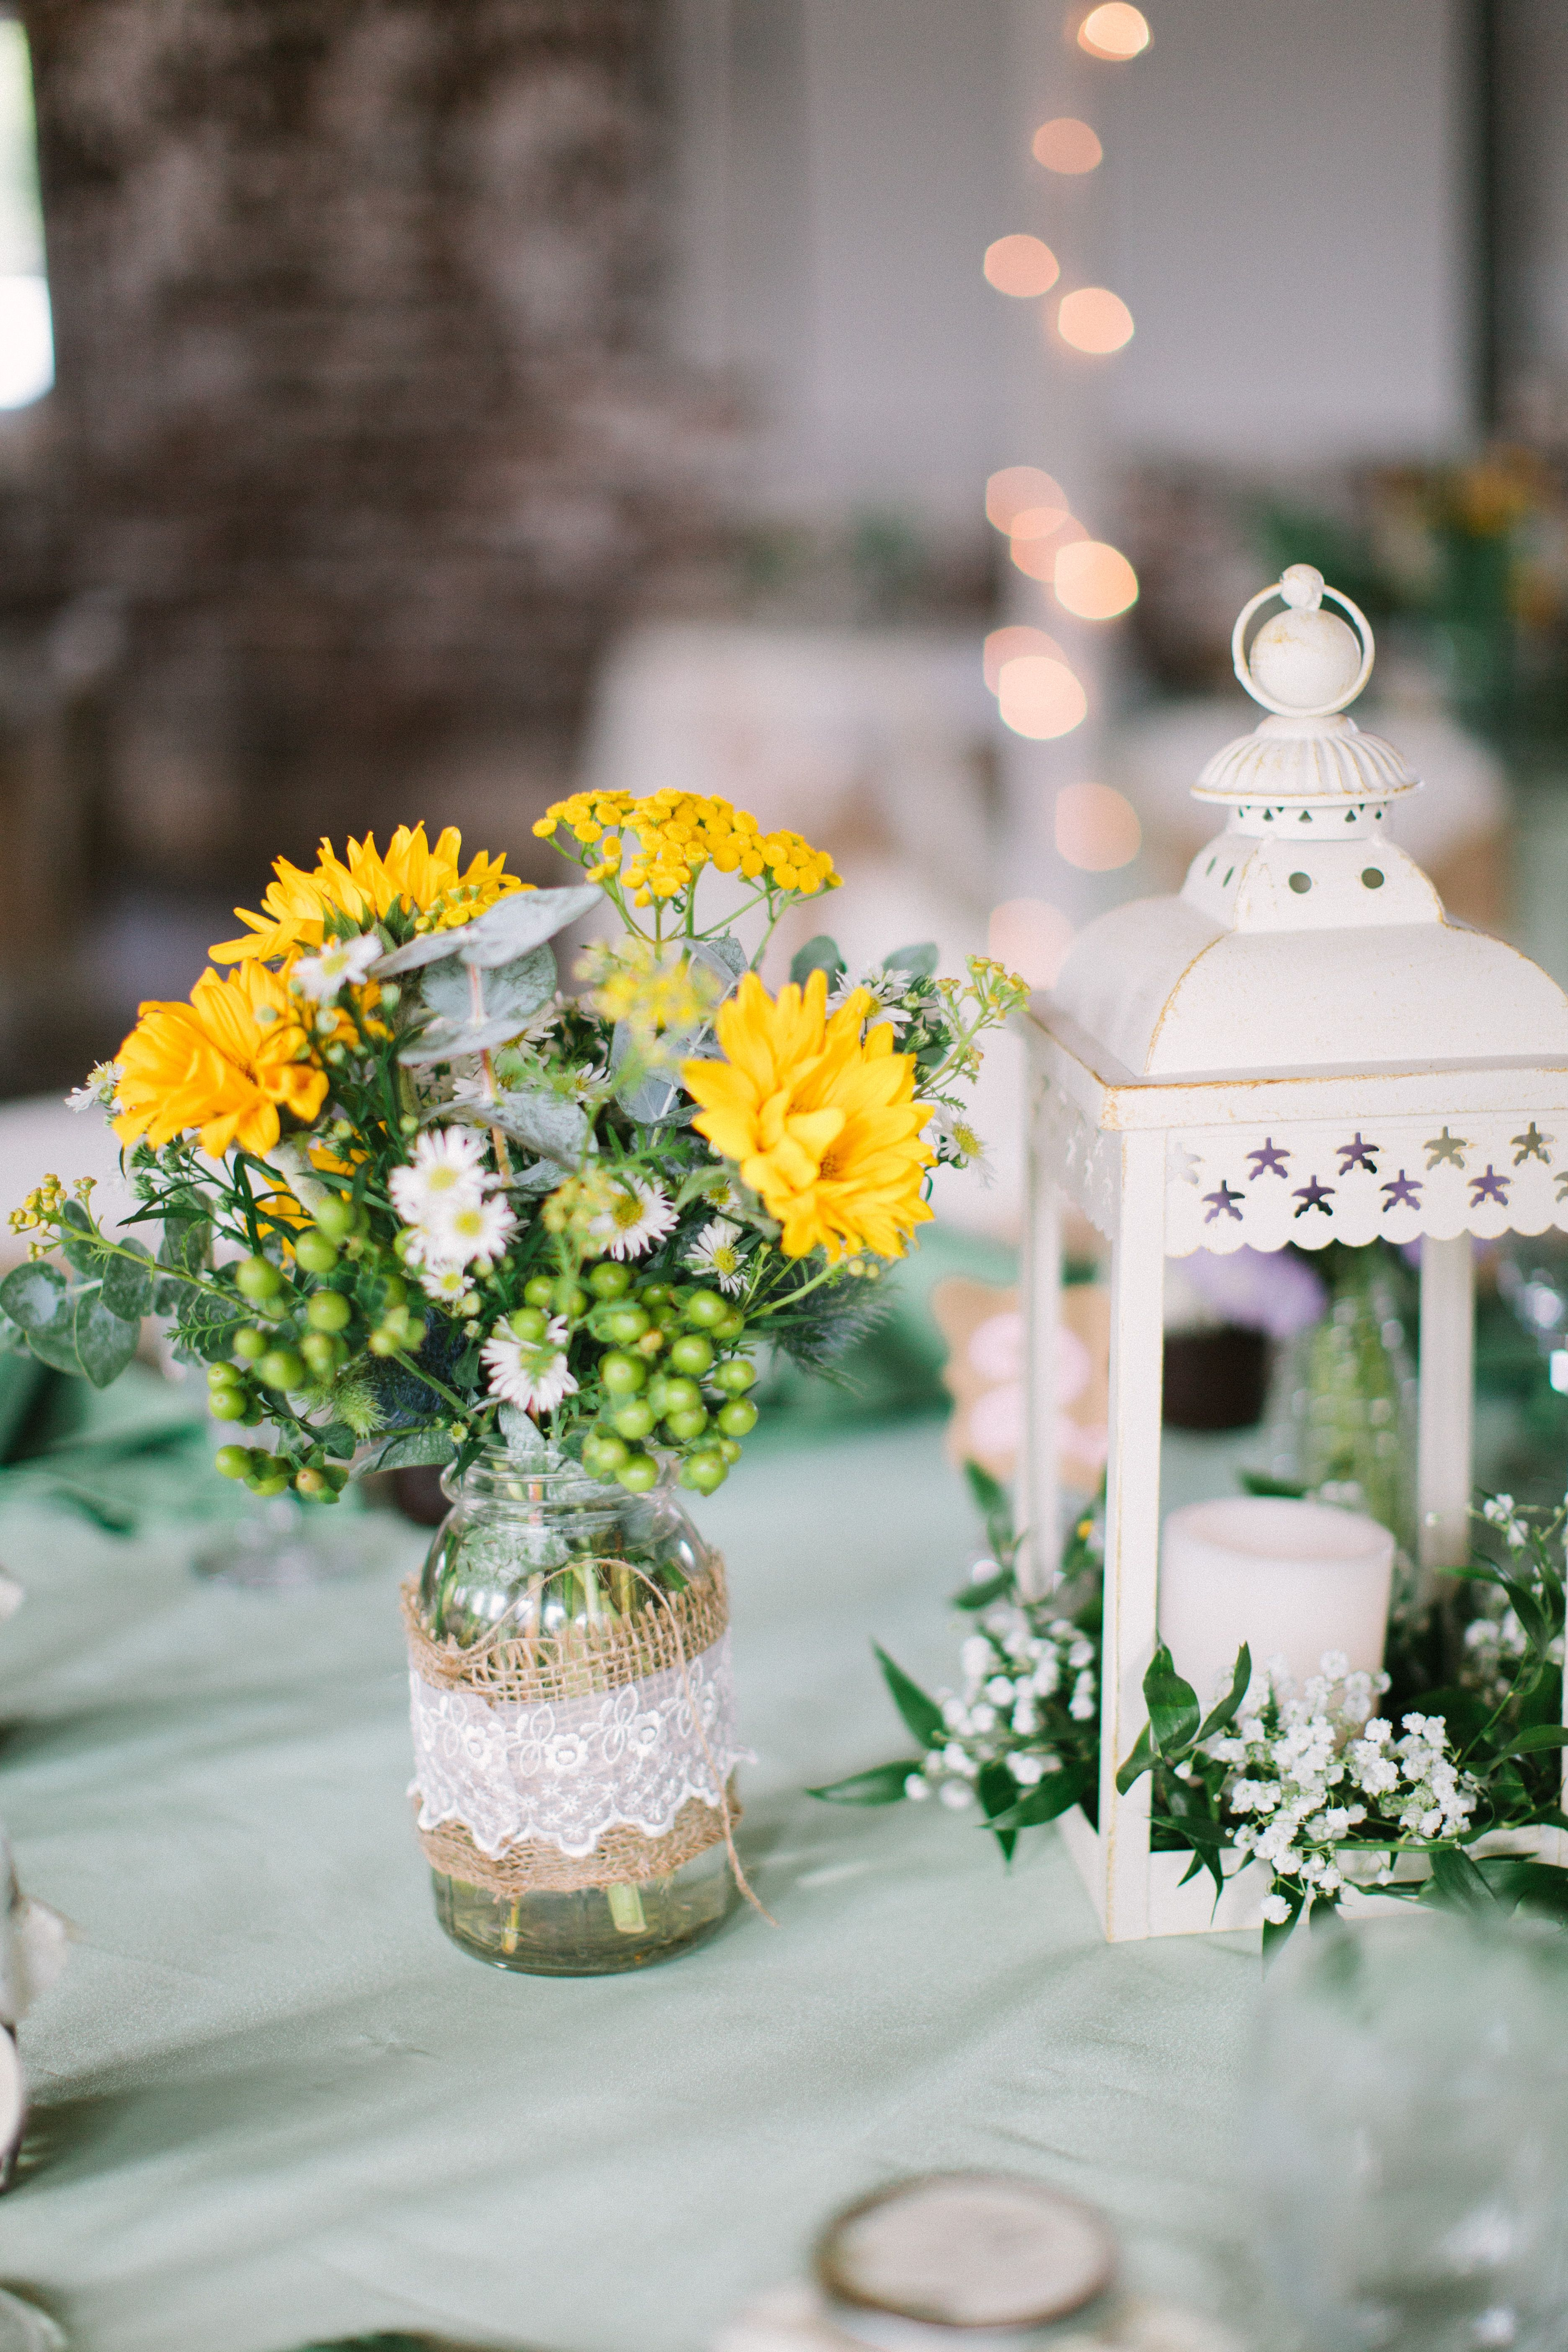 Country Centerpieces For Wedding Tables : Barn reception country wedding centerpieces are mason